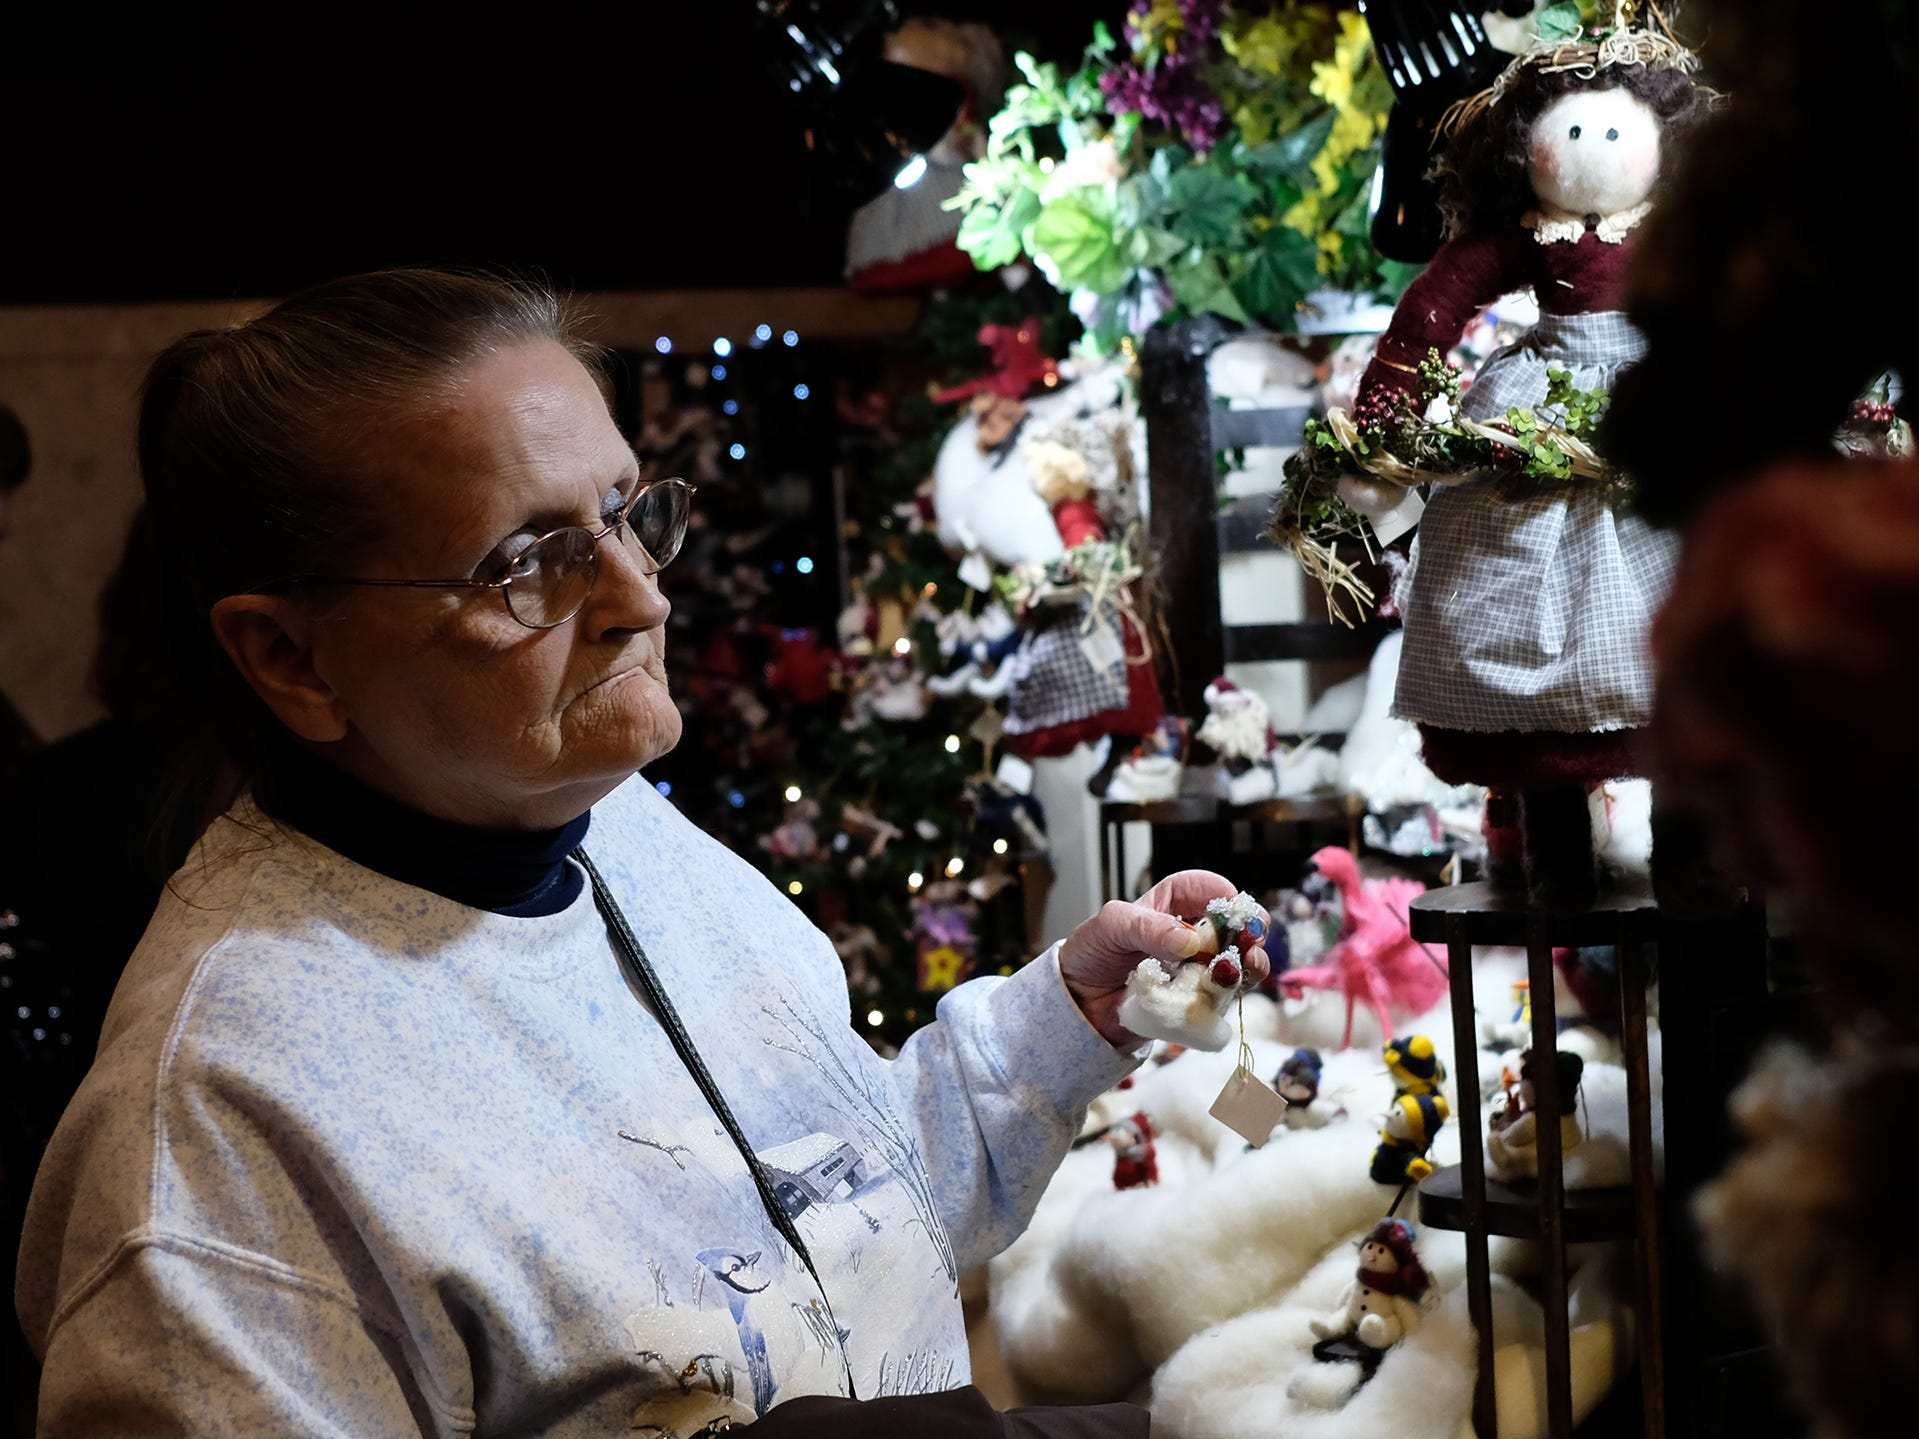 Pat Rutherford from Lansing, says she has attended the MSU Winter Arts & Craft Show every year and has even been a vendor at times. The event wrapped up Sunday, Dec. 2, 2018.